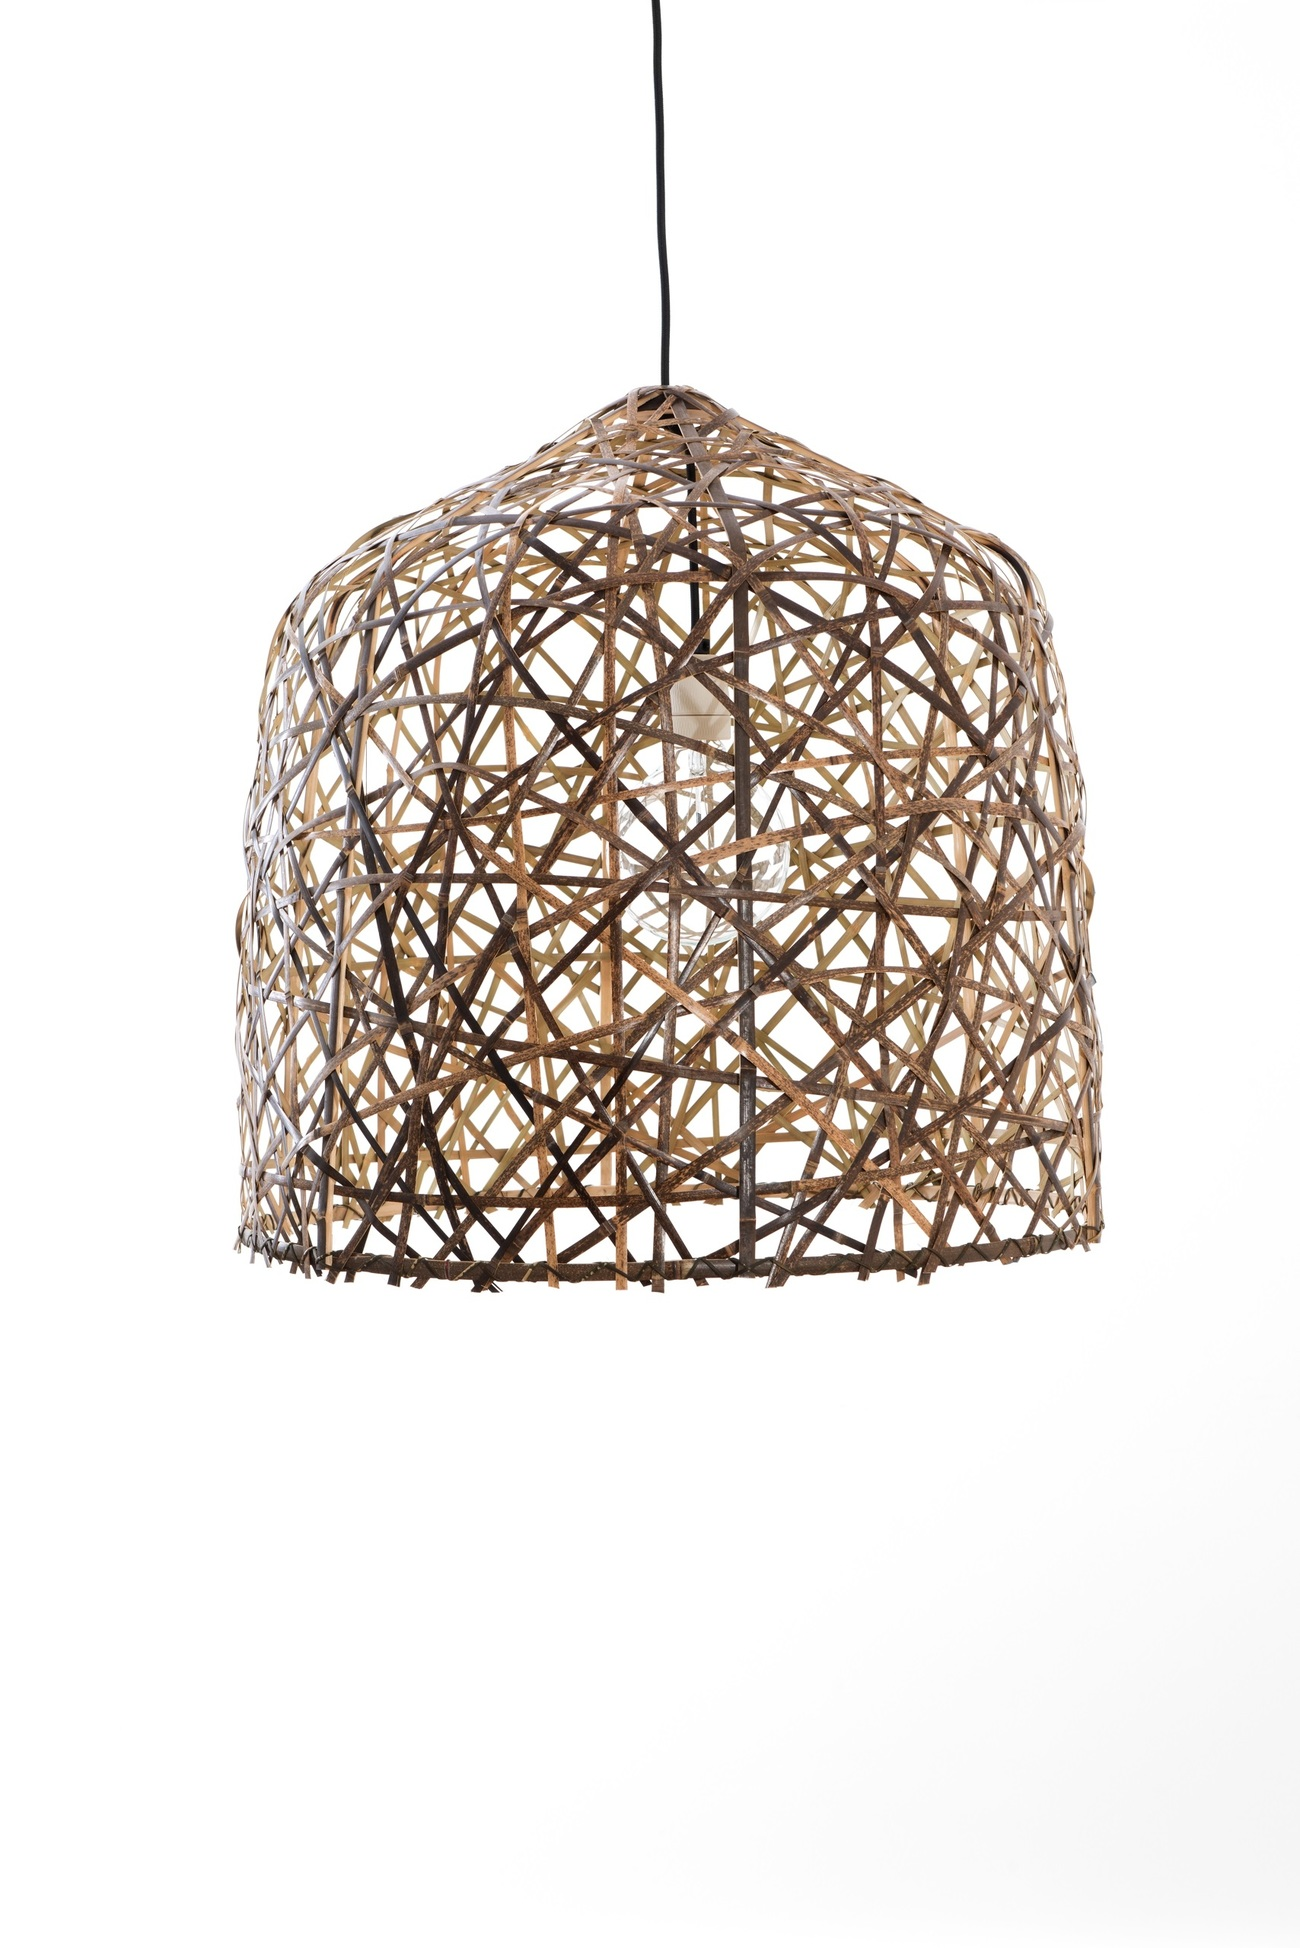 Ay illuminate Black Bird's Nest Medium hanglamp